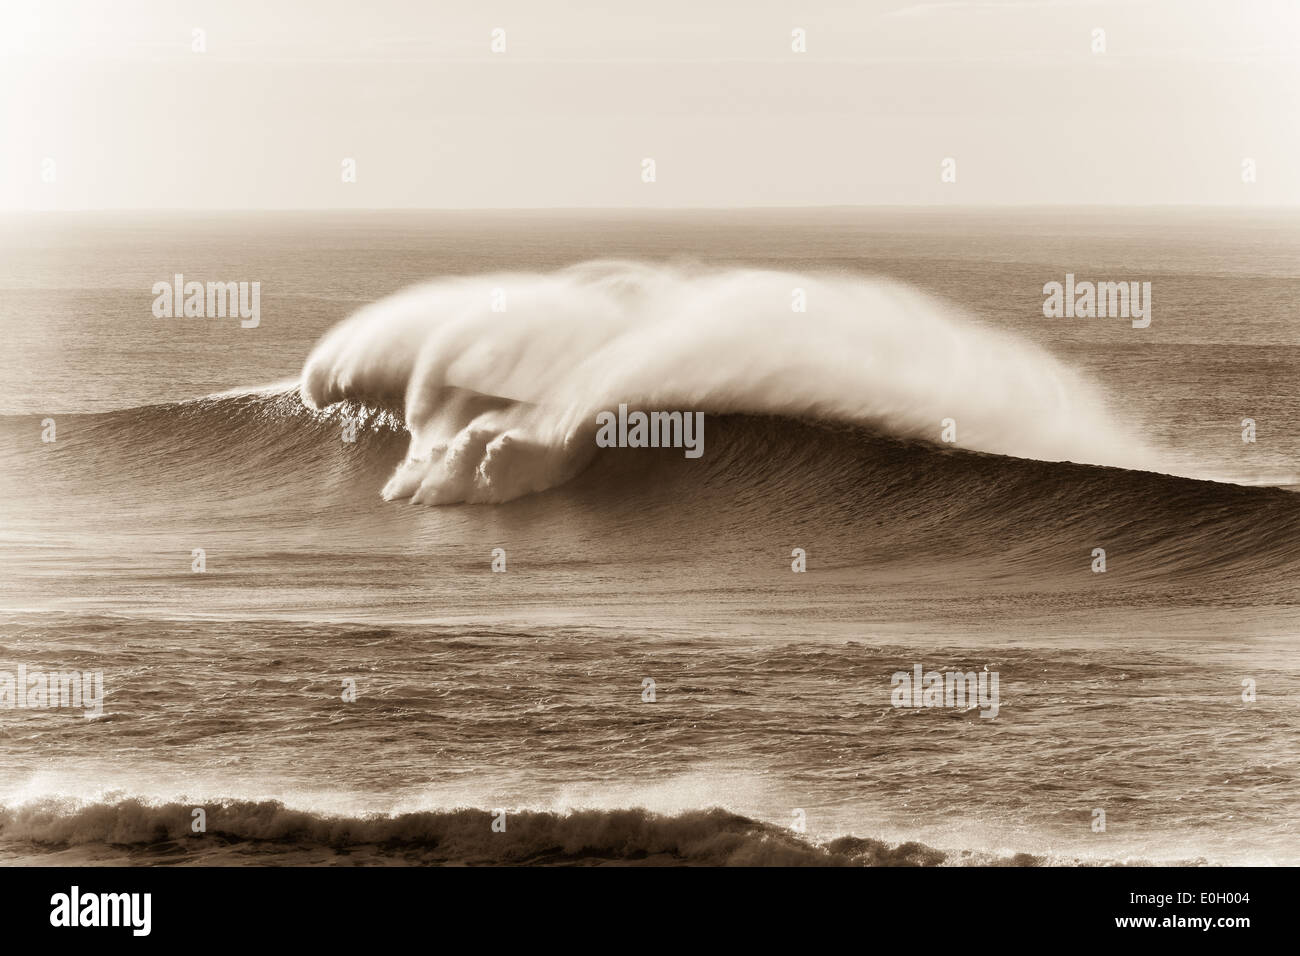 Ocean wave large crashing water swell in vintage black white sepia. - Stock Image